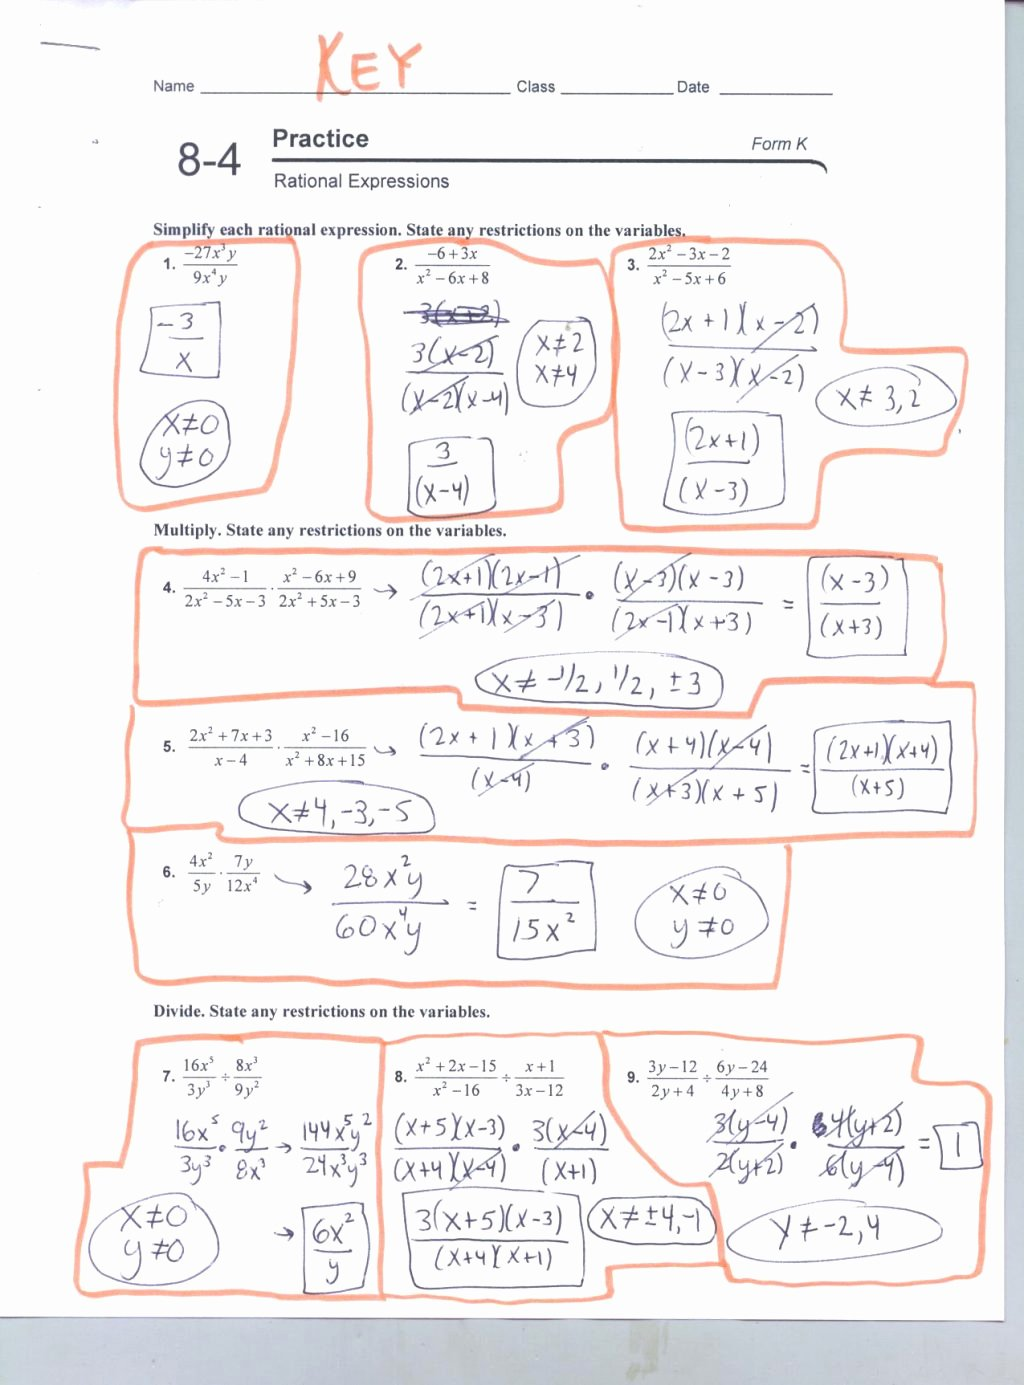 50 Solving Polynomial Equations Worksheet Answers